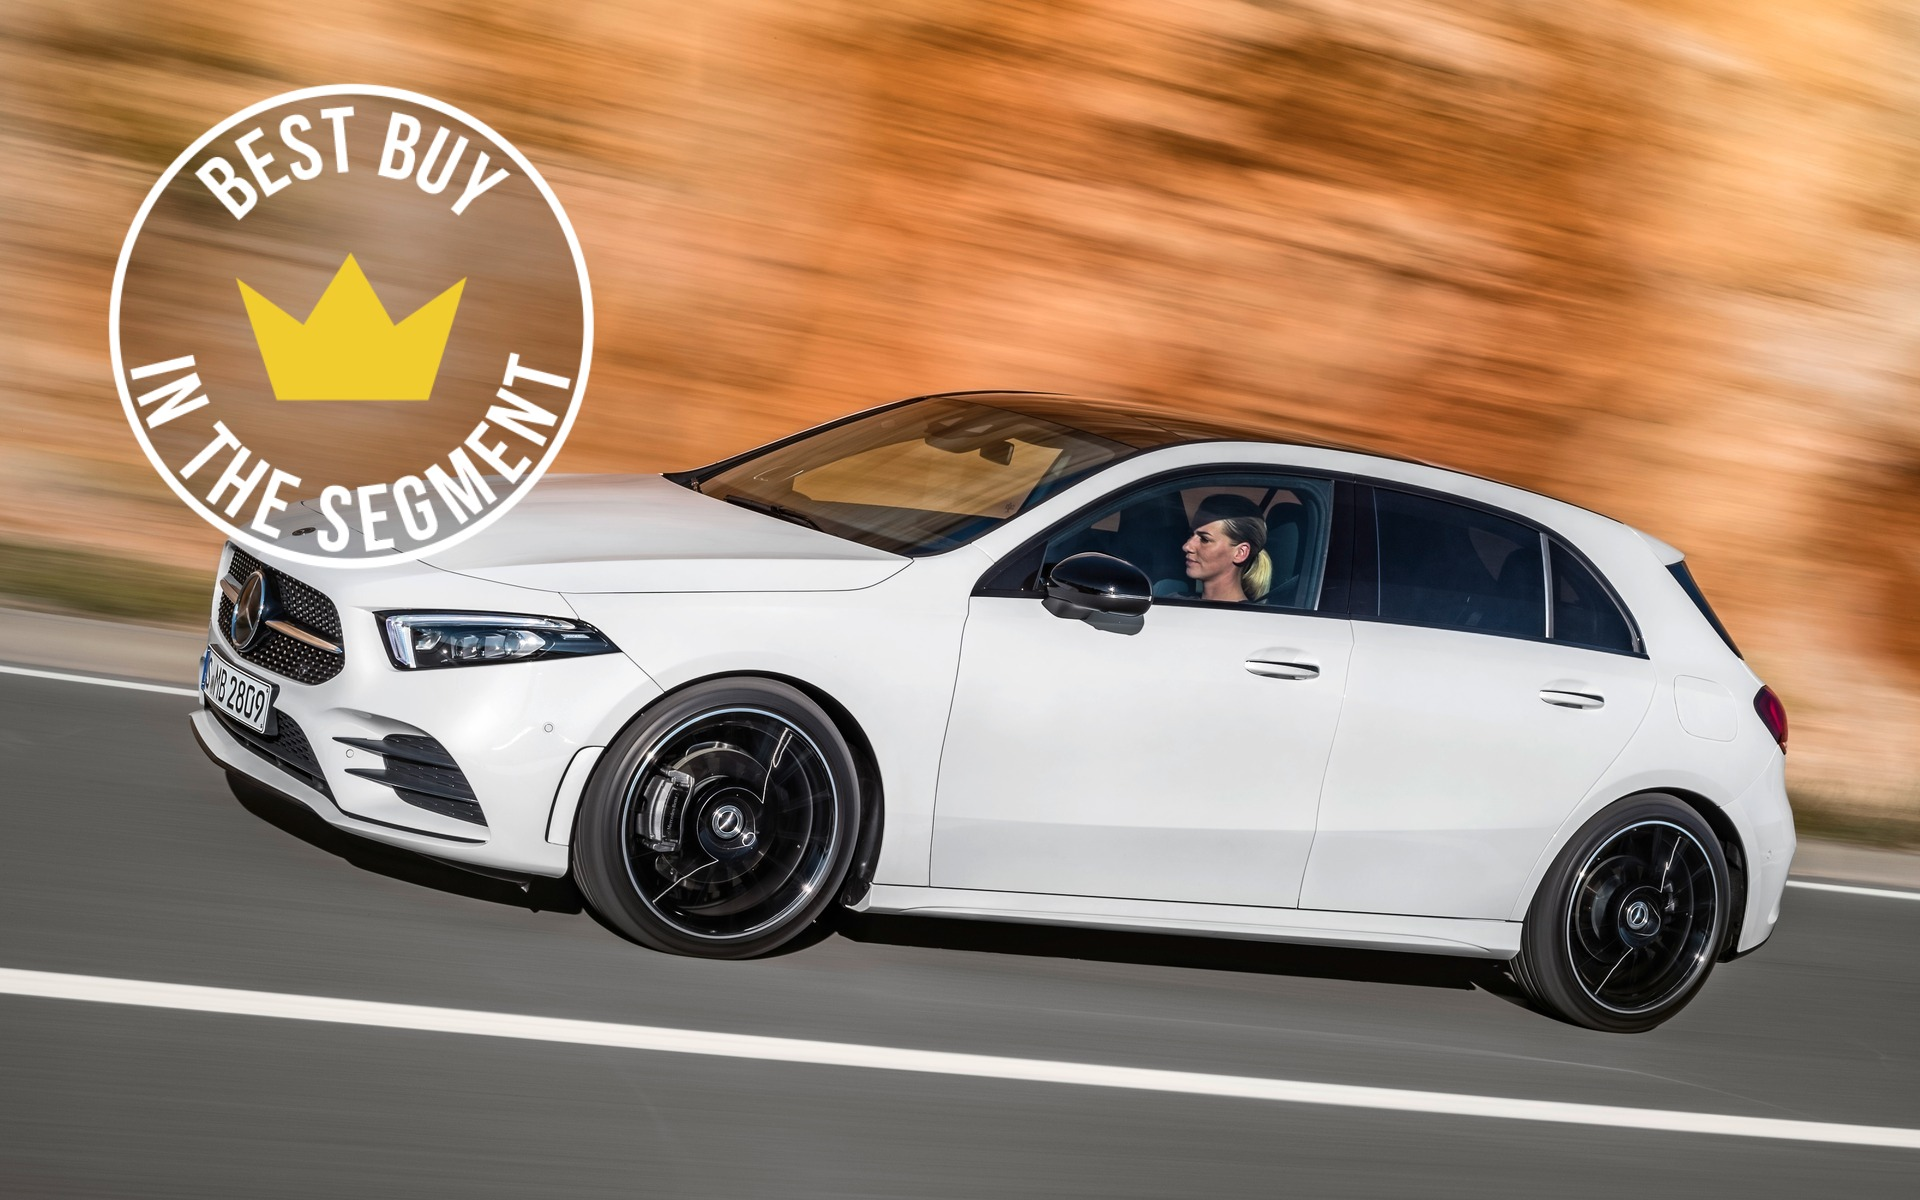 The Car Guide S 2019 Best Buys Mercedes Benz A Class The Car Guide